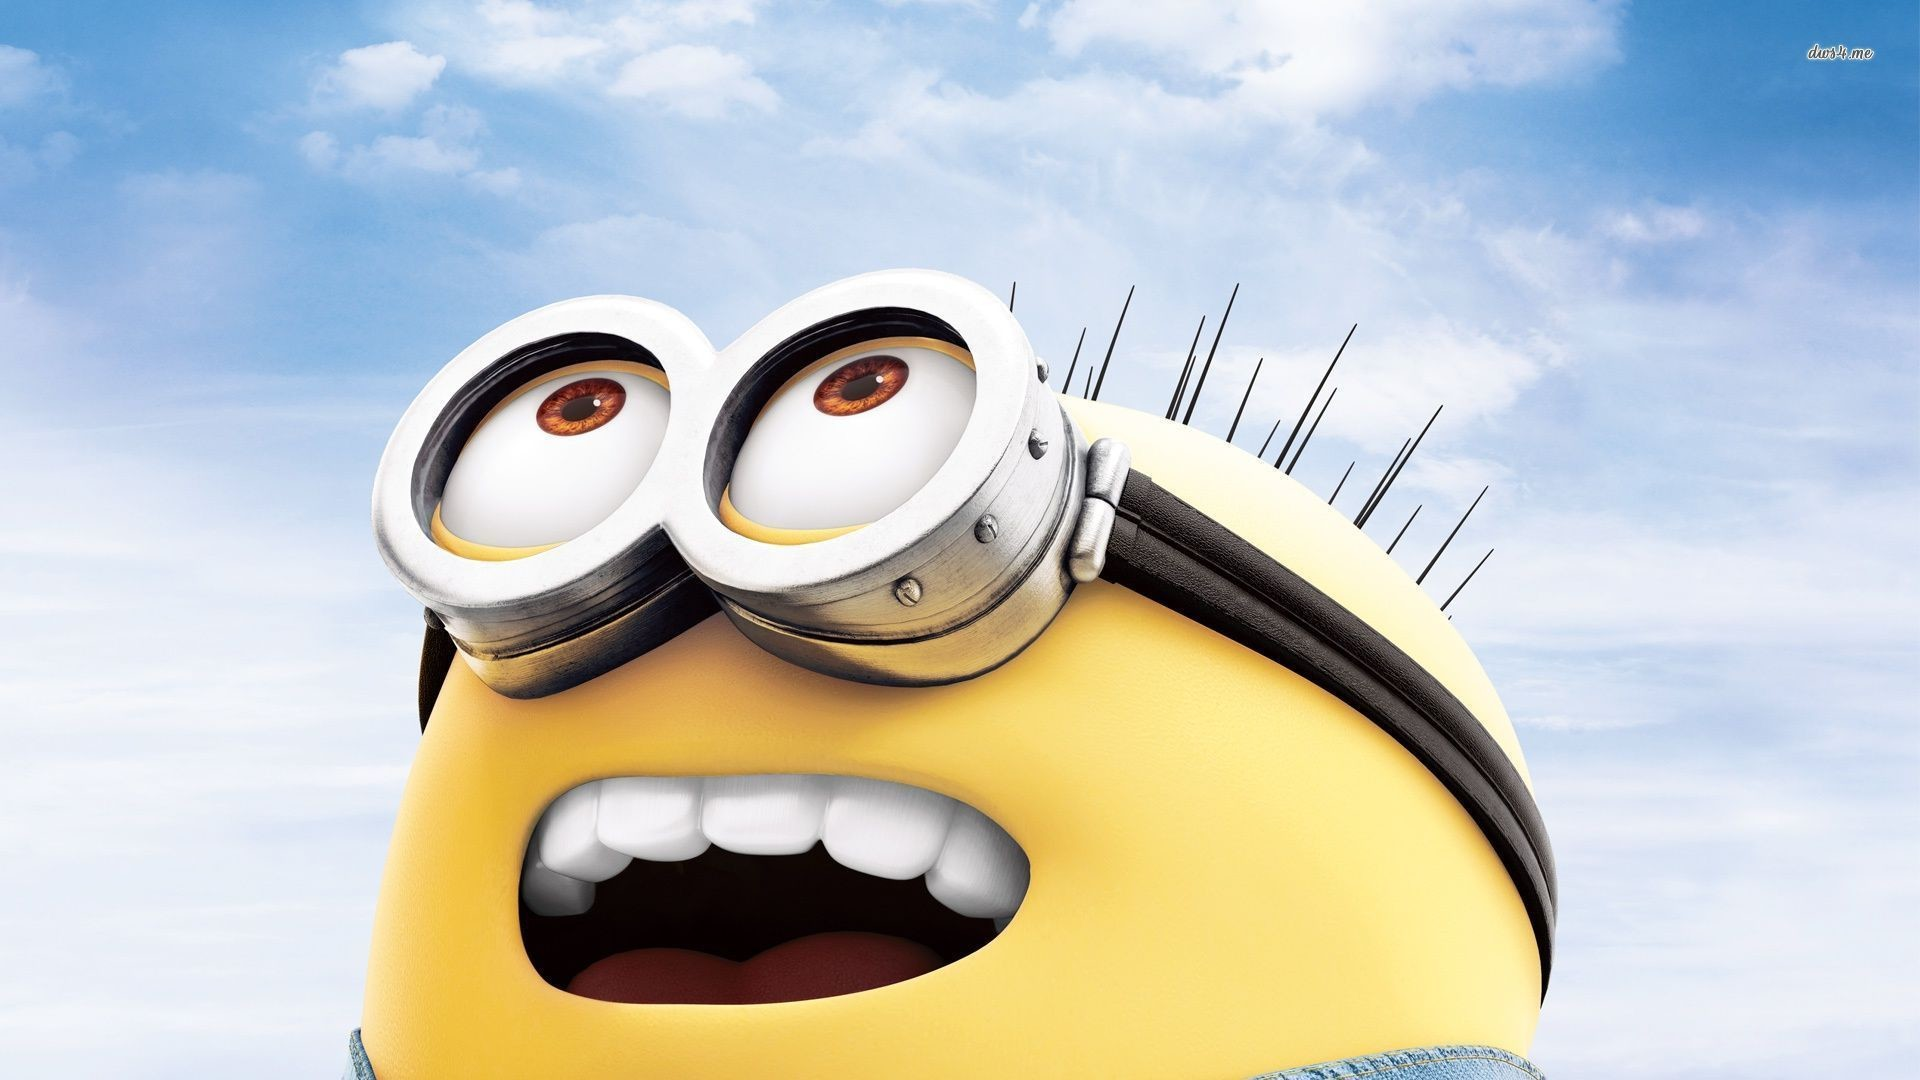 1920x1080 Best-Minion-Wallpaper-High-Def ·  Cartoons_The_best_cartoon_Minions_the_despicable_me_2_051631_ ·  cool_minions_wallpaper_for_facebook_timeline_desktop